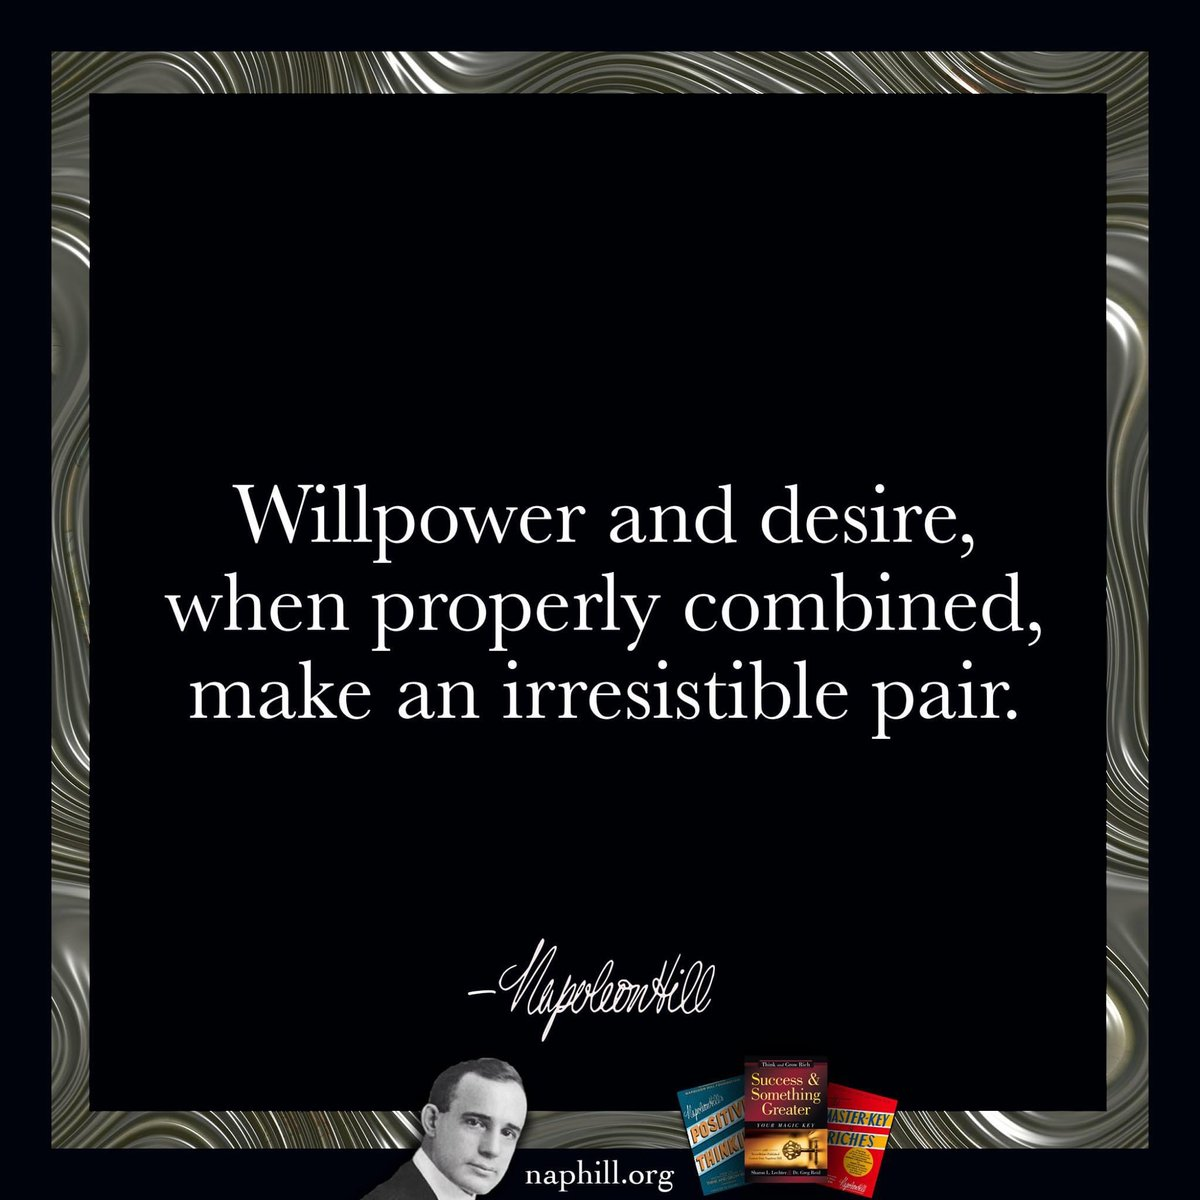 Willpower and desire, when properly combined, make an irresistible pair. #NapoleonHill #ThinkandGrowRich #Willpower #Desire #Mindset #Inspiration #Motivation #Success #Goalspic.twitter.com/sFPQbdzVTZ